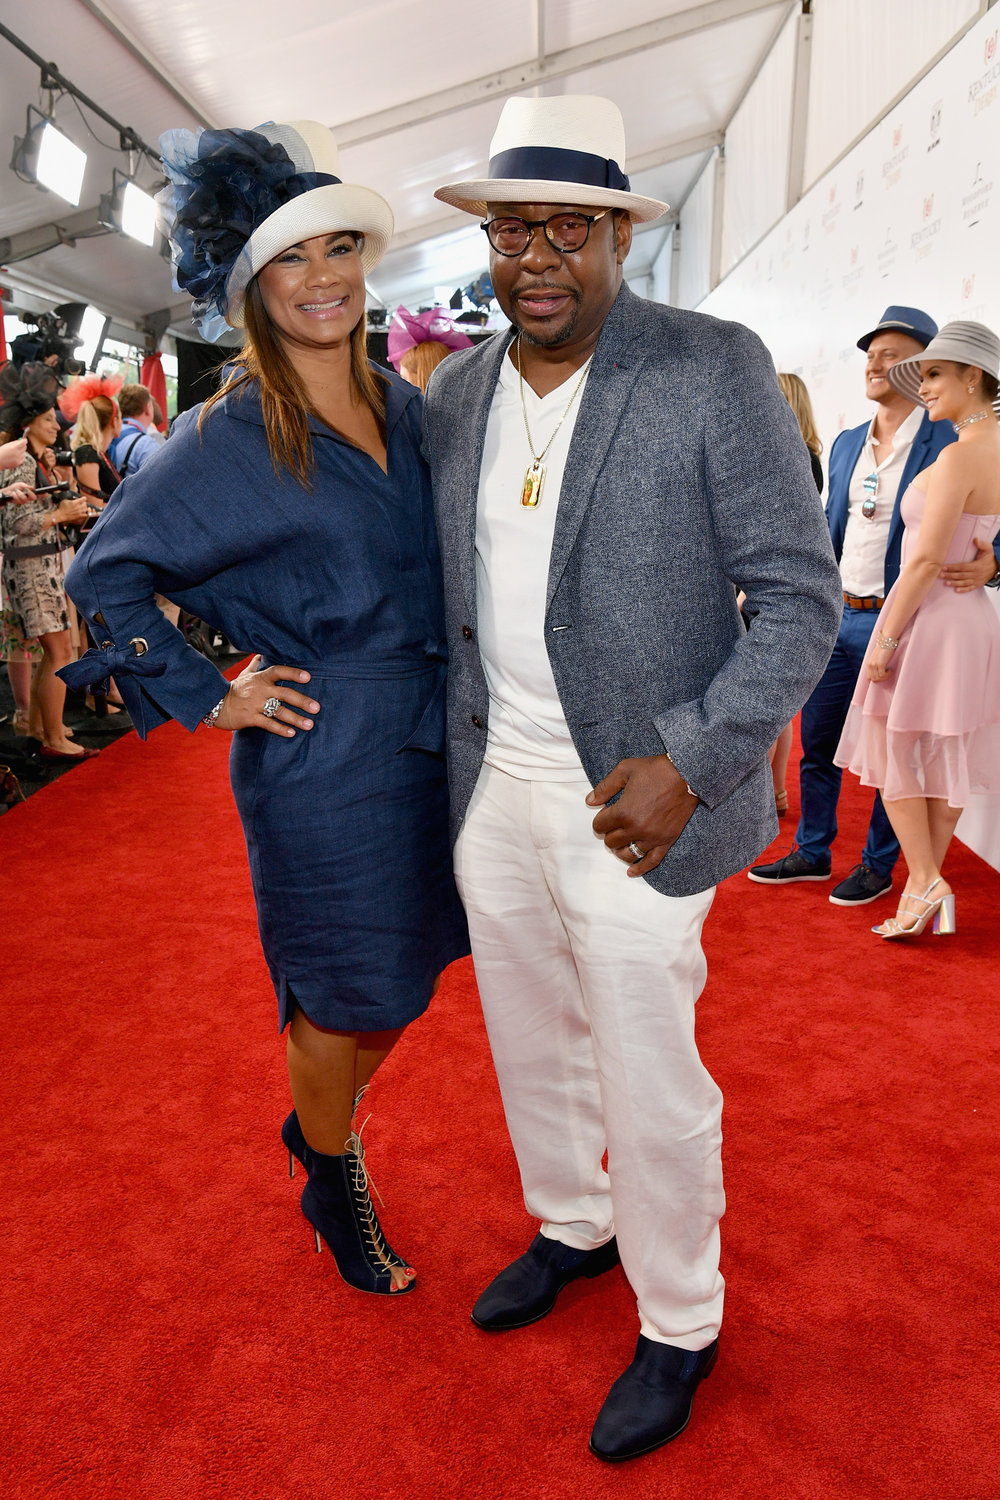 LOUISVILLE, KY - MAY 05:  Alicia Etheredge and Bobby Brown attend Kentucky Derby 144 on May 5, 2018 in Louisville, Kentucky.  (Photo by Dia Dipasupil/Getty Images for Chruchill Downs) *** Local Caption *** Alicia Etheredge;Bobby Brown